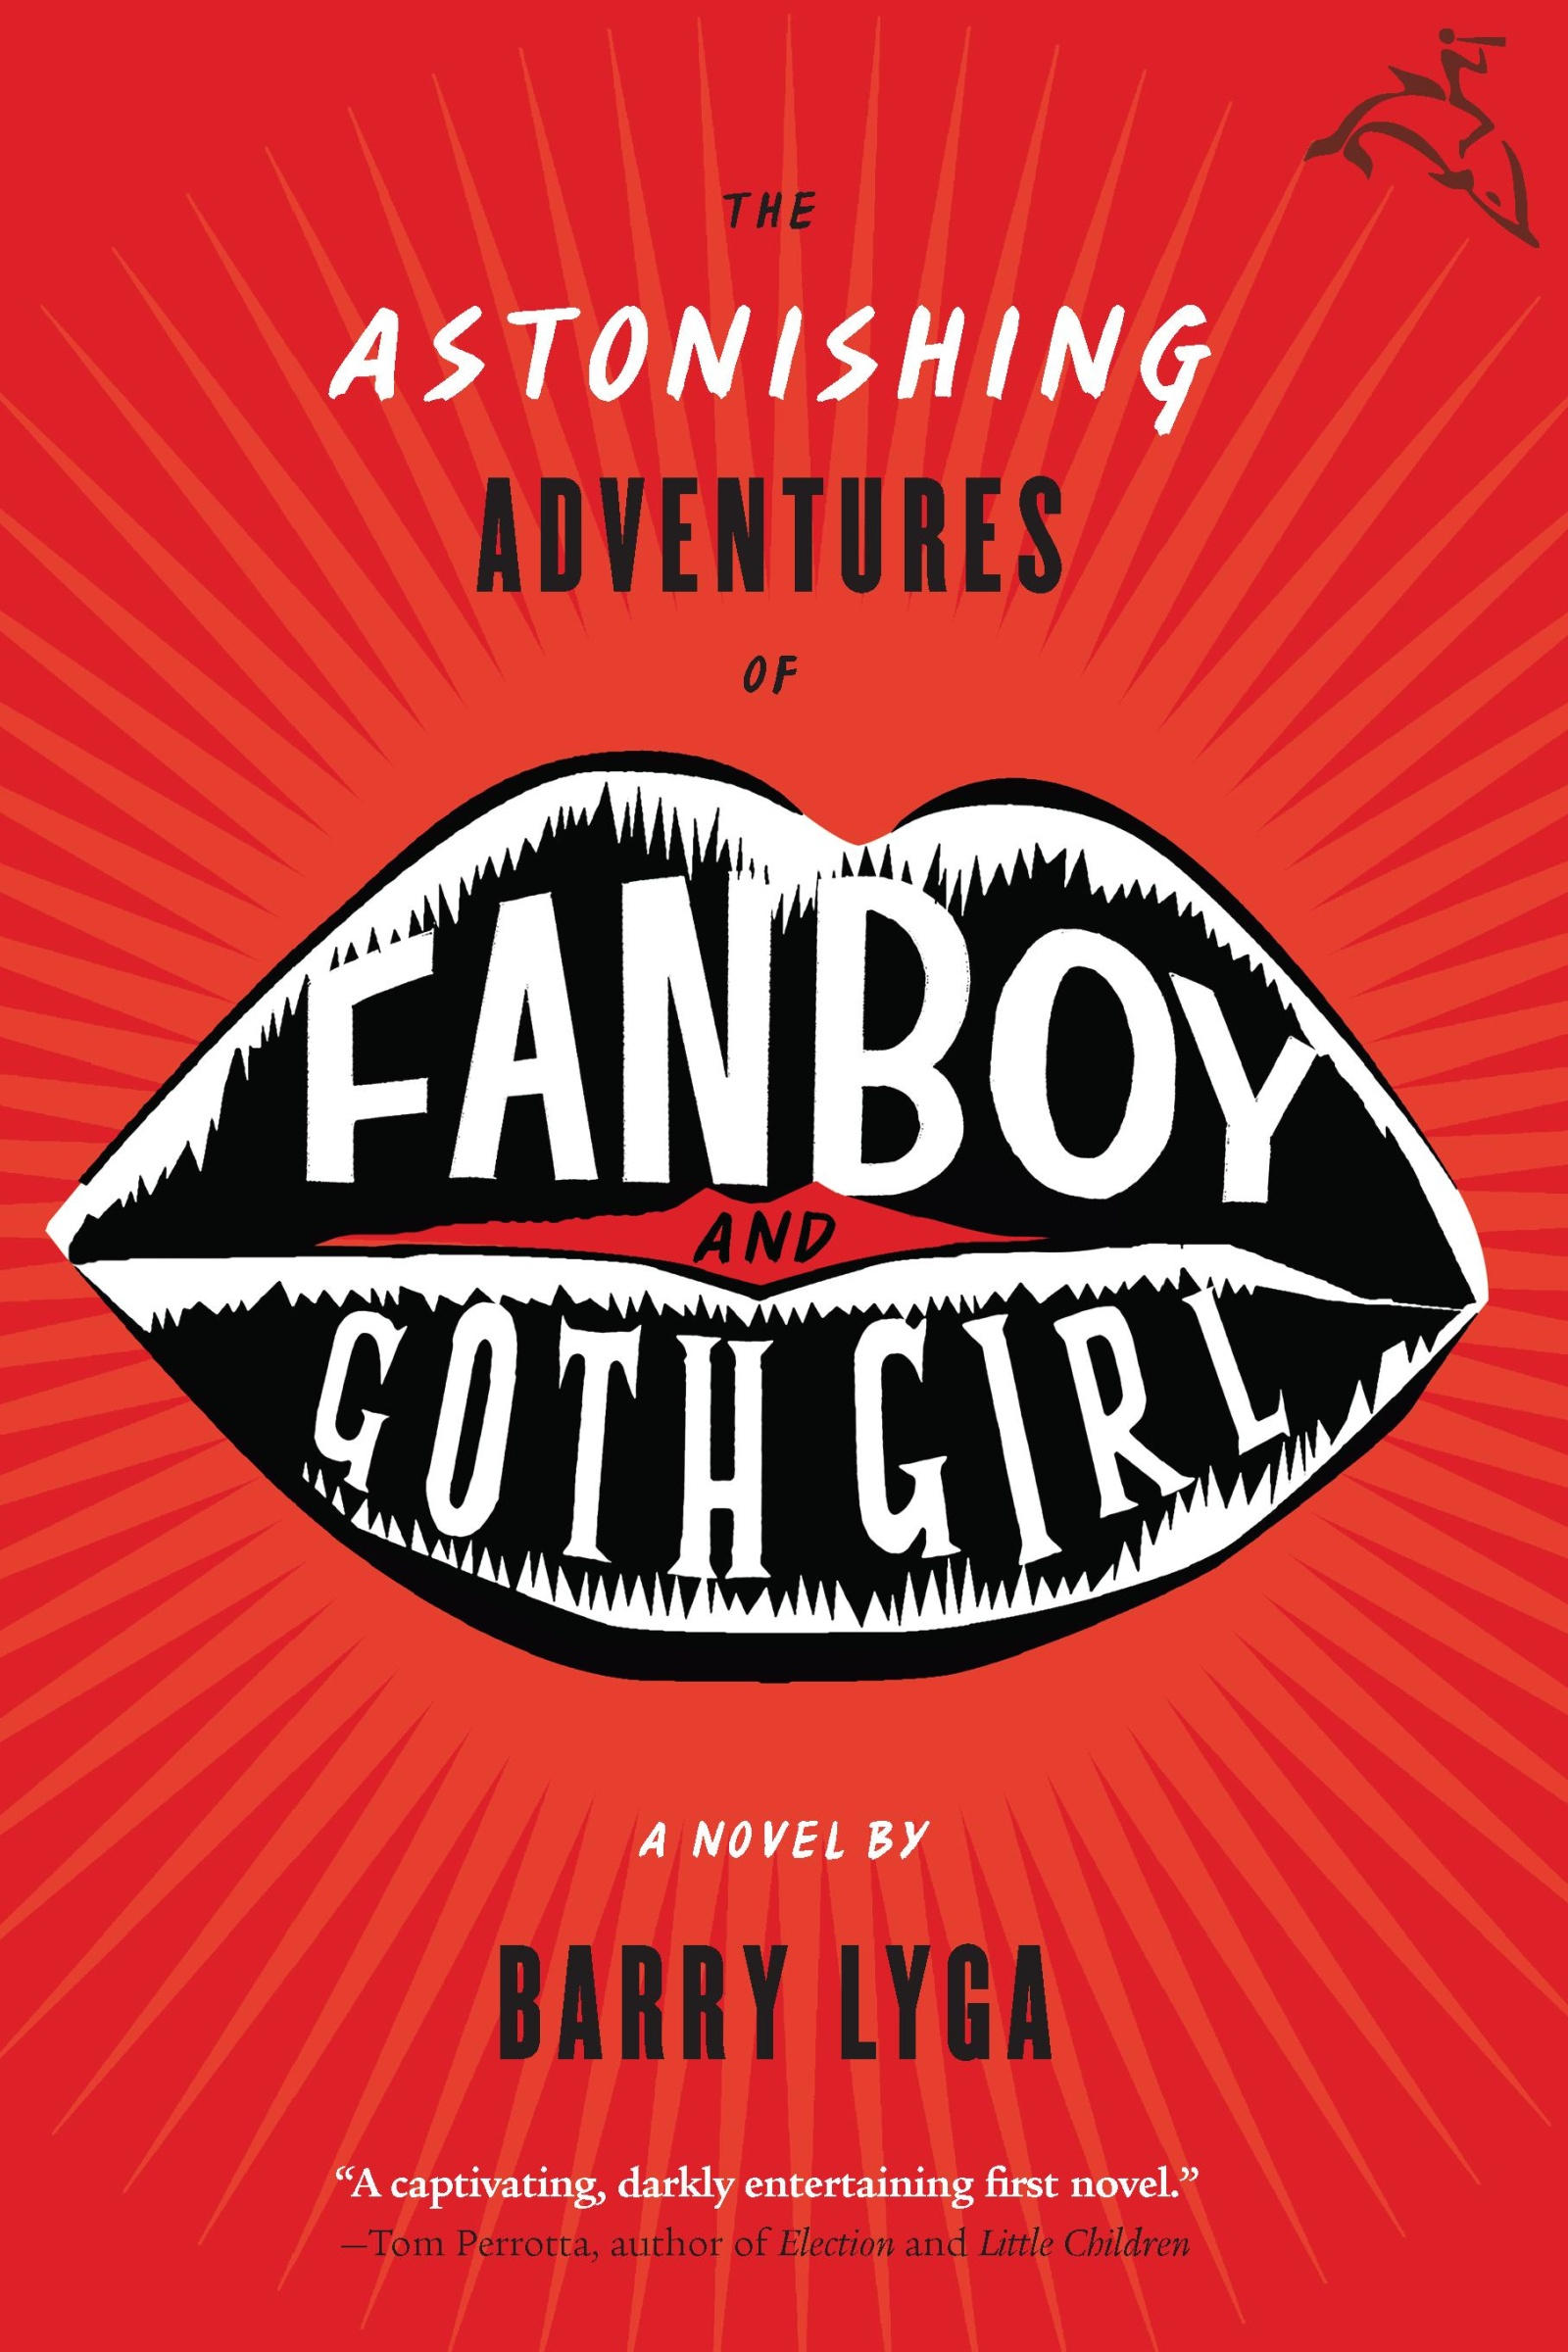 Cover Image of The Astonishing Adventures of Fanboy and Goth Girl